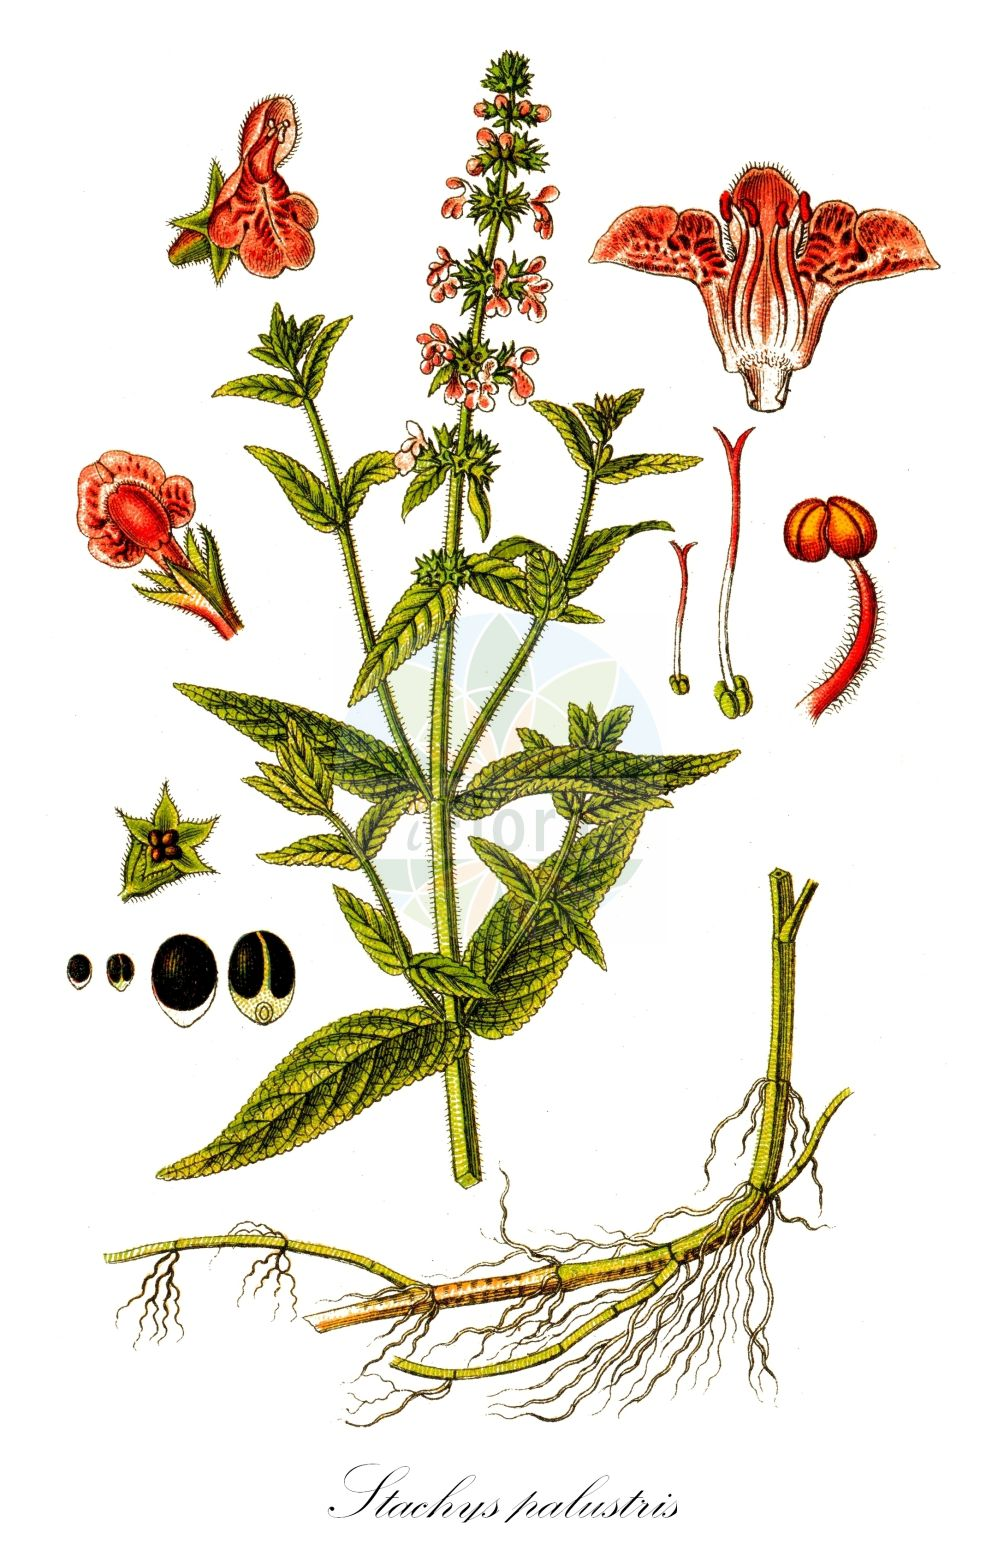 Historische Abbildung von Stachys palustris (Sumpf-Ziest - Marsh Woundwort). Das Bild zeigt Blatt, Bluete, Frucht und Same. ---- Historical Drawing of Stachys palustris (Sumpf-Ziest - Marsh Woundwort).The image is showing leaf, flower, fruit and seed.(Stachys palustris,Sumpf-Ziest,Marsh Woundwort,Stachys aquatica,Stachys austriaca,Stachys maeotica,Stachys segetum,Stachys wolgensis,Schweinsruebe,Marsh Betony,Marsh Hedgenettle,Smooth Hedgenettle,Woundwort,Stachys,Ziest,Hedgenettle,Lamiaceae,Lippenbluetengewaechse;Lippenbluetler,Nettle family,Blatt,Bluete,Frucht,Same,leaf,flower,fruit,seed,Sturm (1796f))